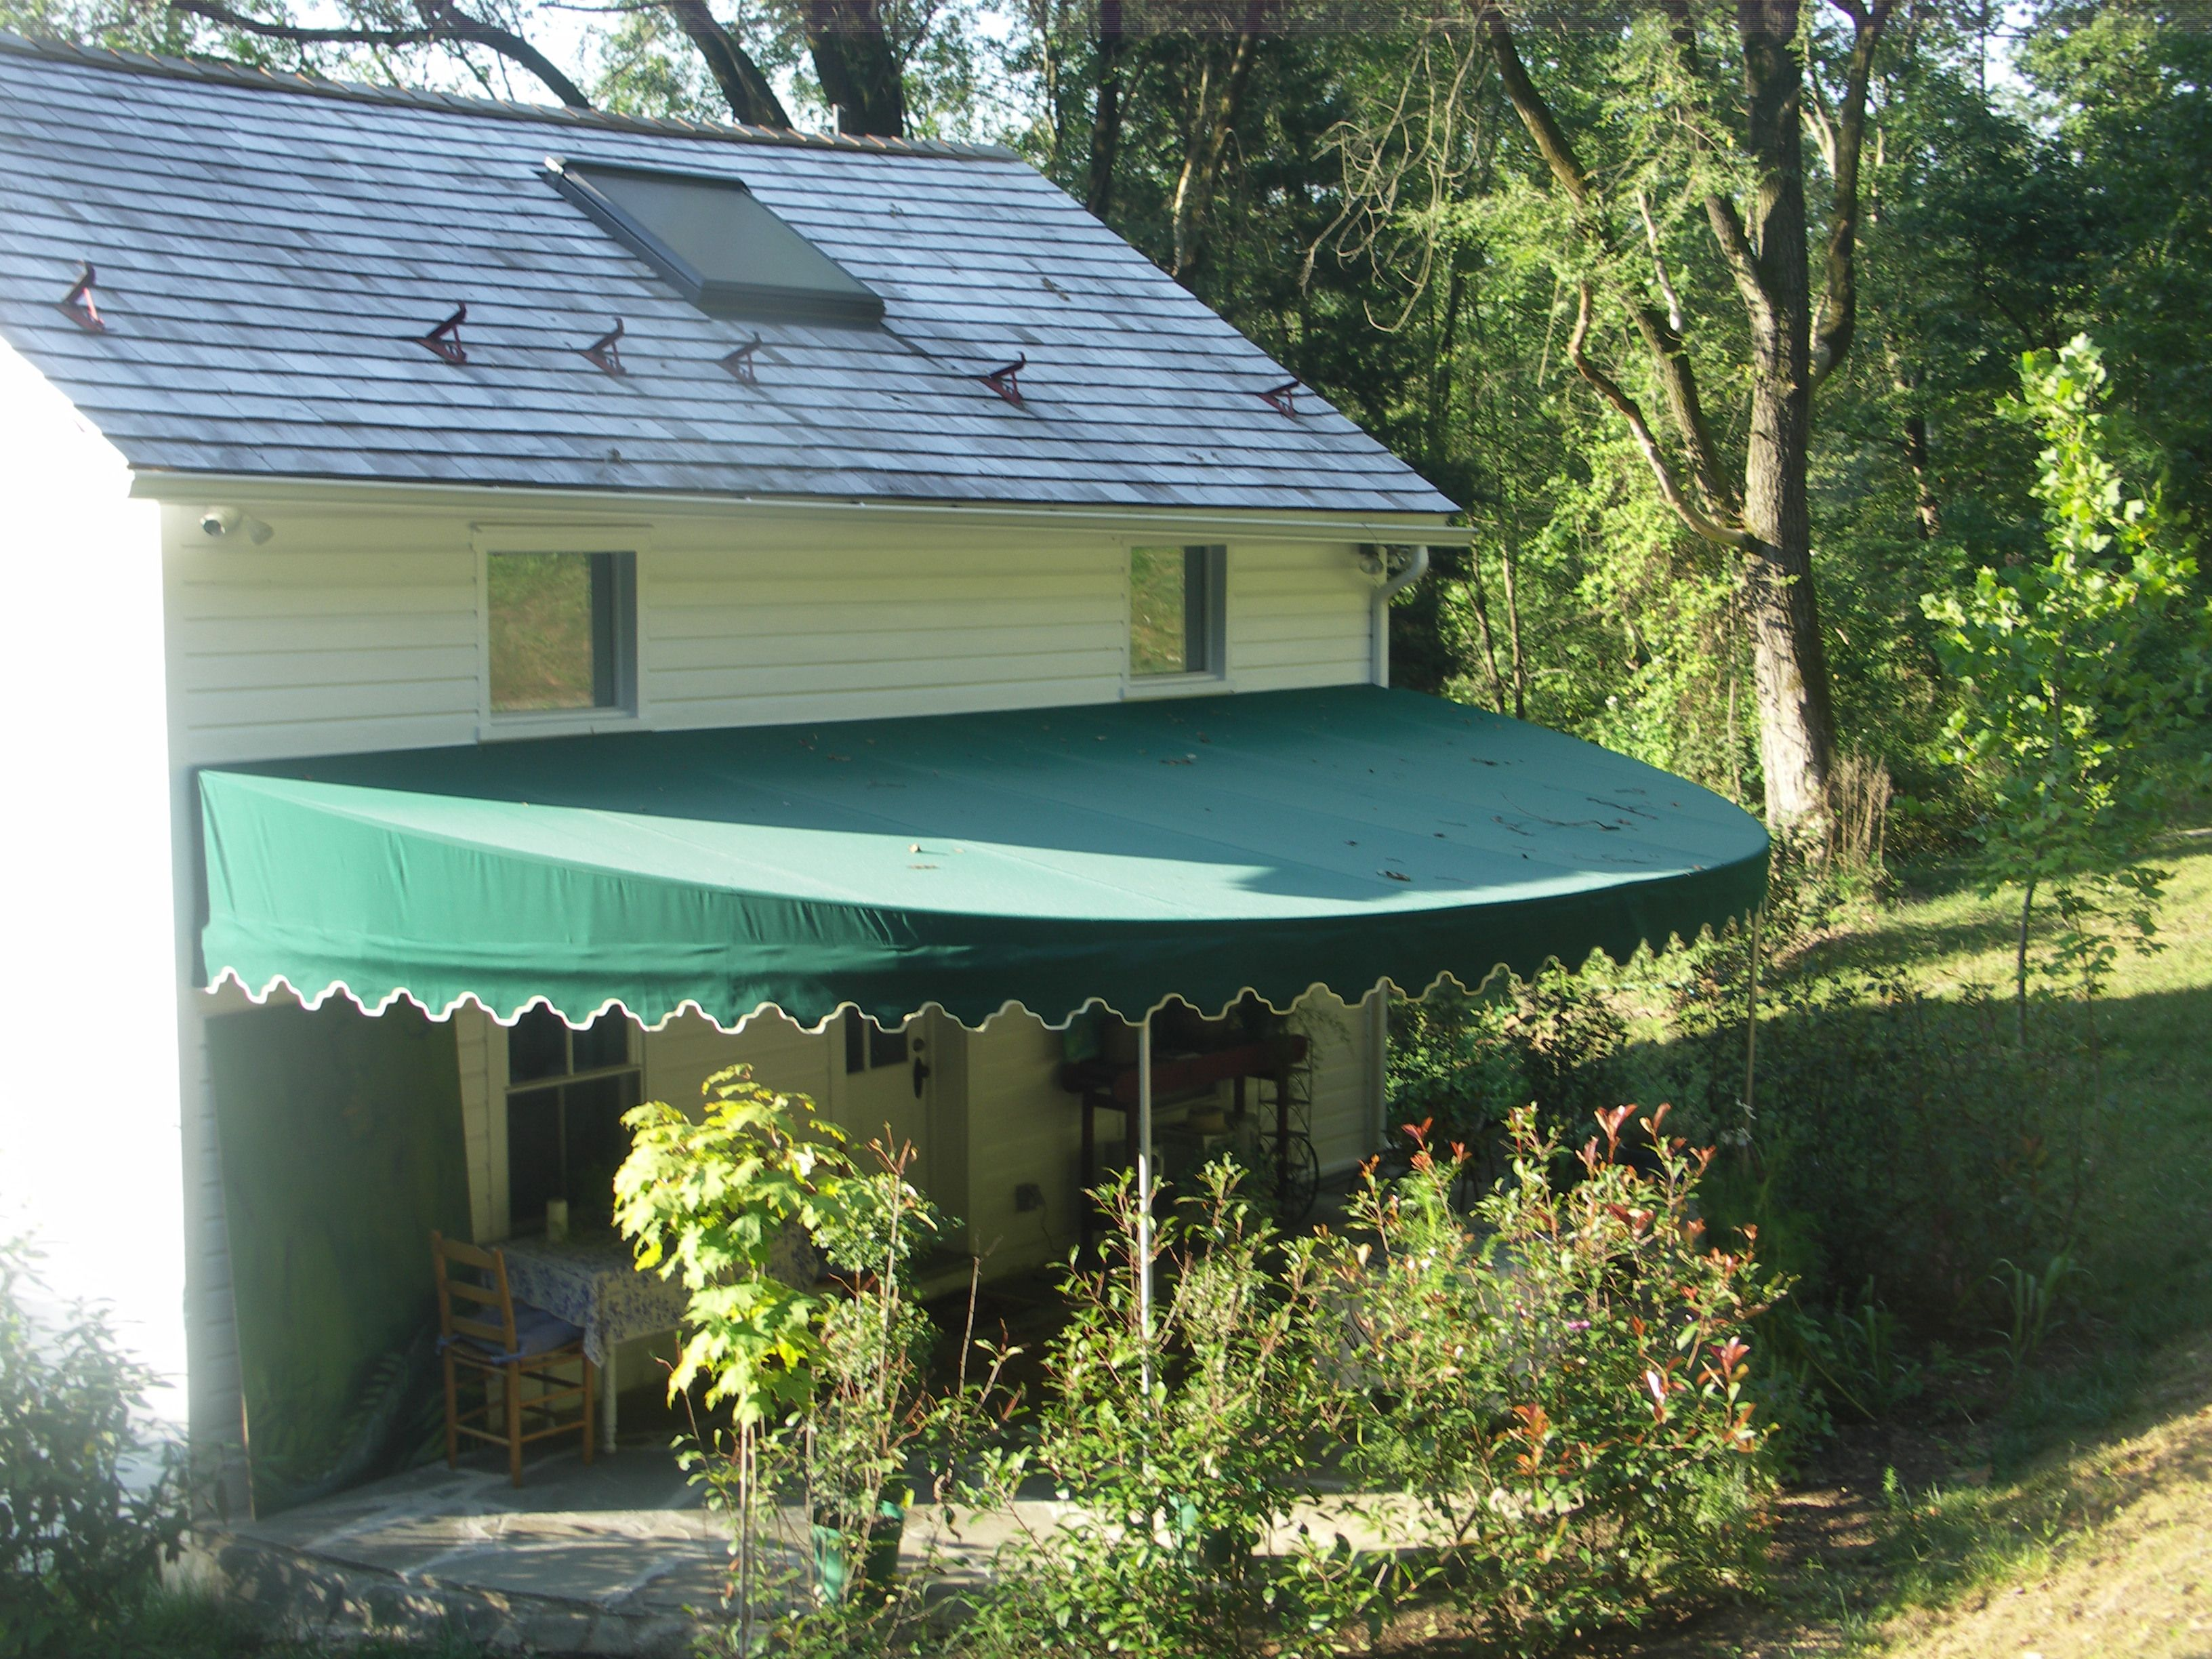 awning picture image carport style for cheap asyfreedomwalk patios carports awnings kits metal com